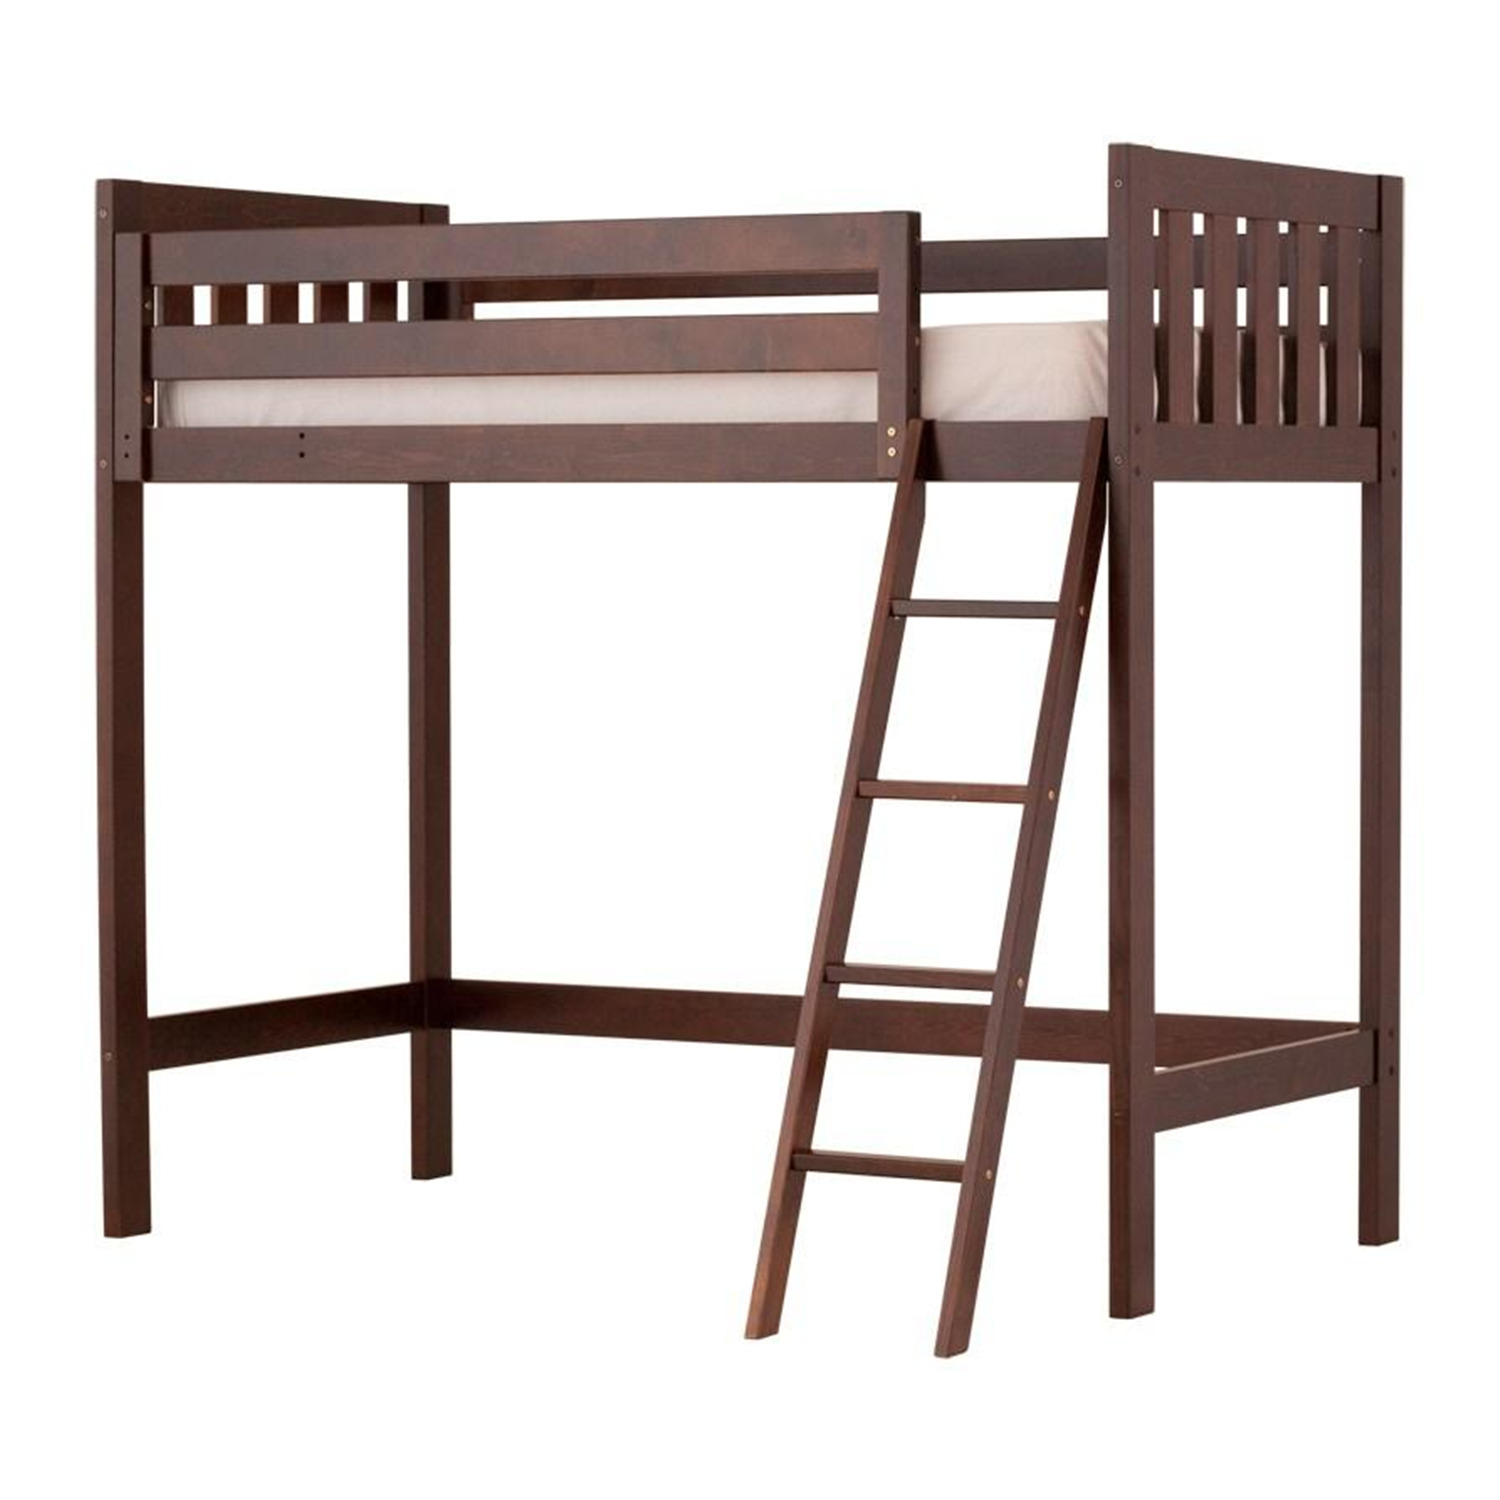 Canwood loft bed 28 images canwood canwood alpine ii loft bed by oj commerce 494 99 - Canwood whistler ...